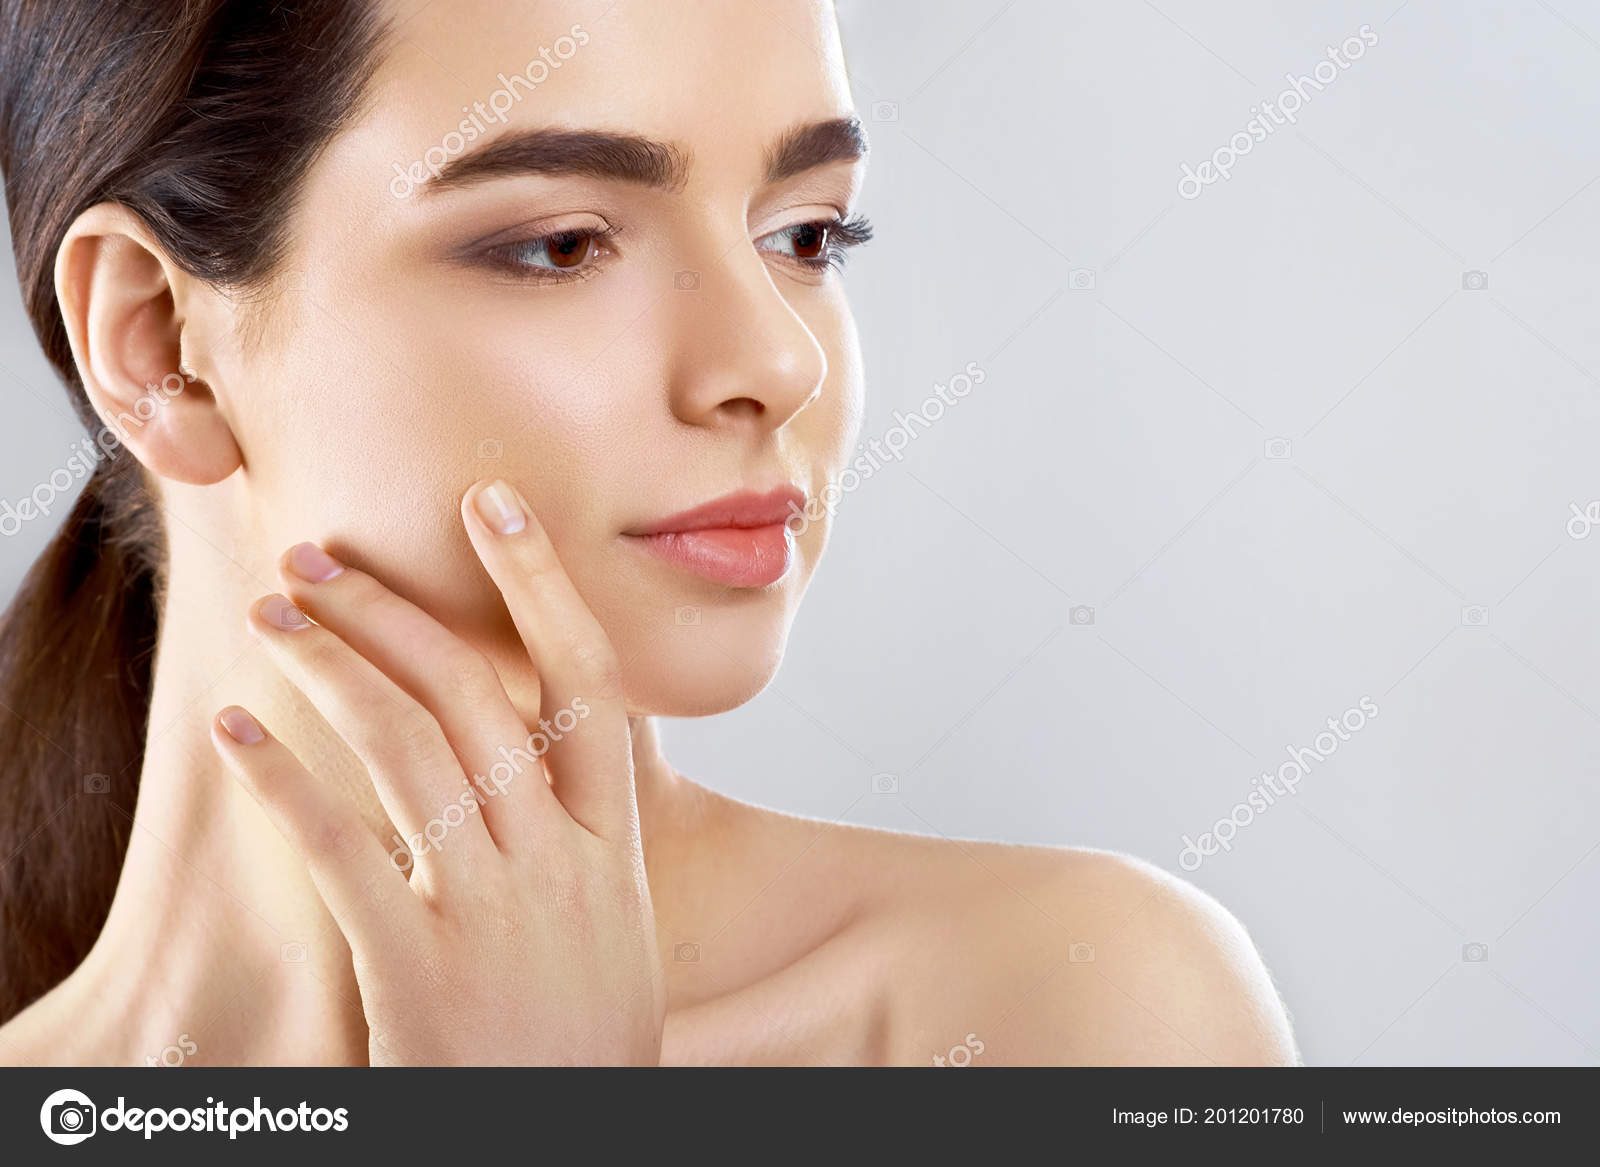 Beauty Face Beautiful Woman Natural Makeup Touch Own Face Girl